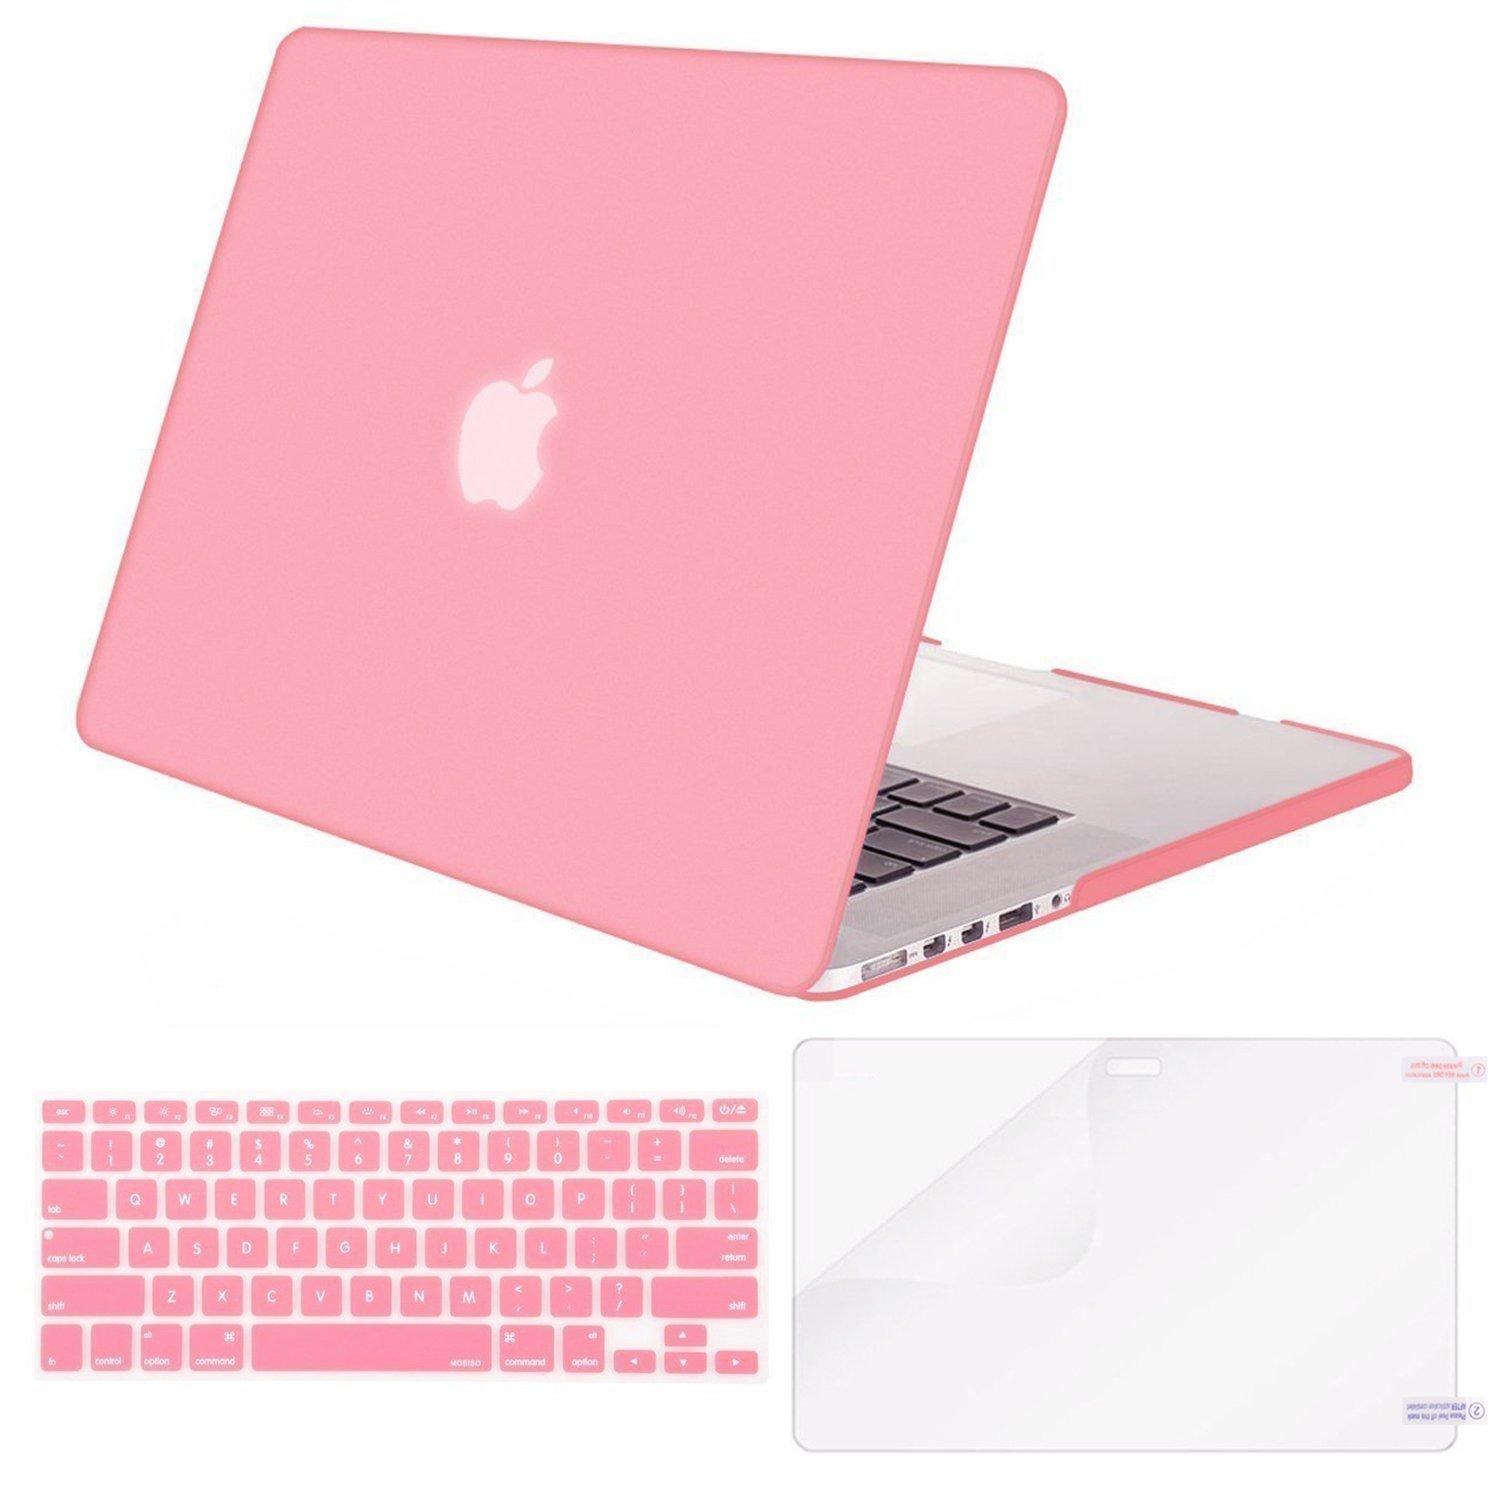 ... Keyboard Cover and Screen Protector. MacBook Air 13 Case Transparent Frosted Plastic Hard Shell Case Cover Bundle for Apple MacBook Air